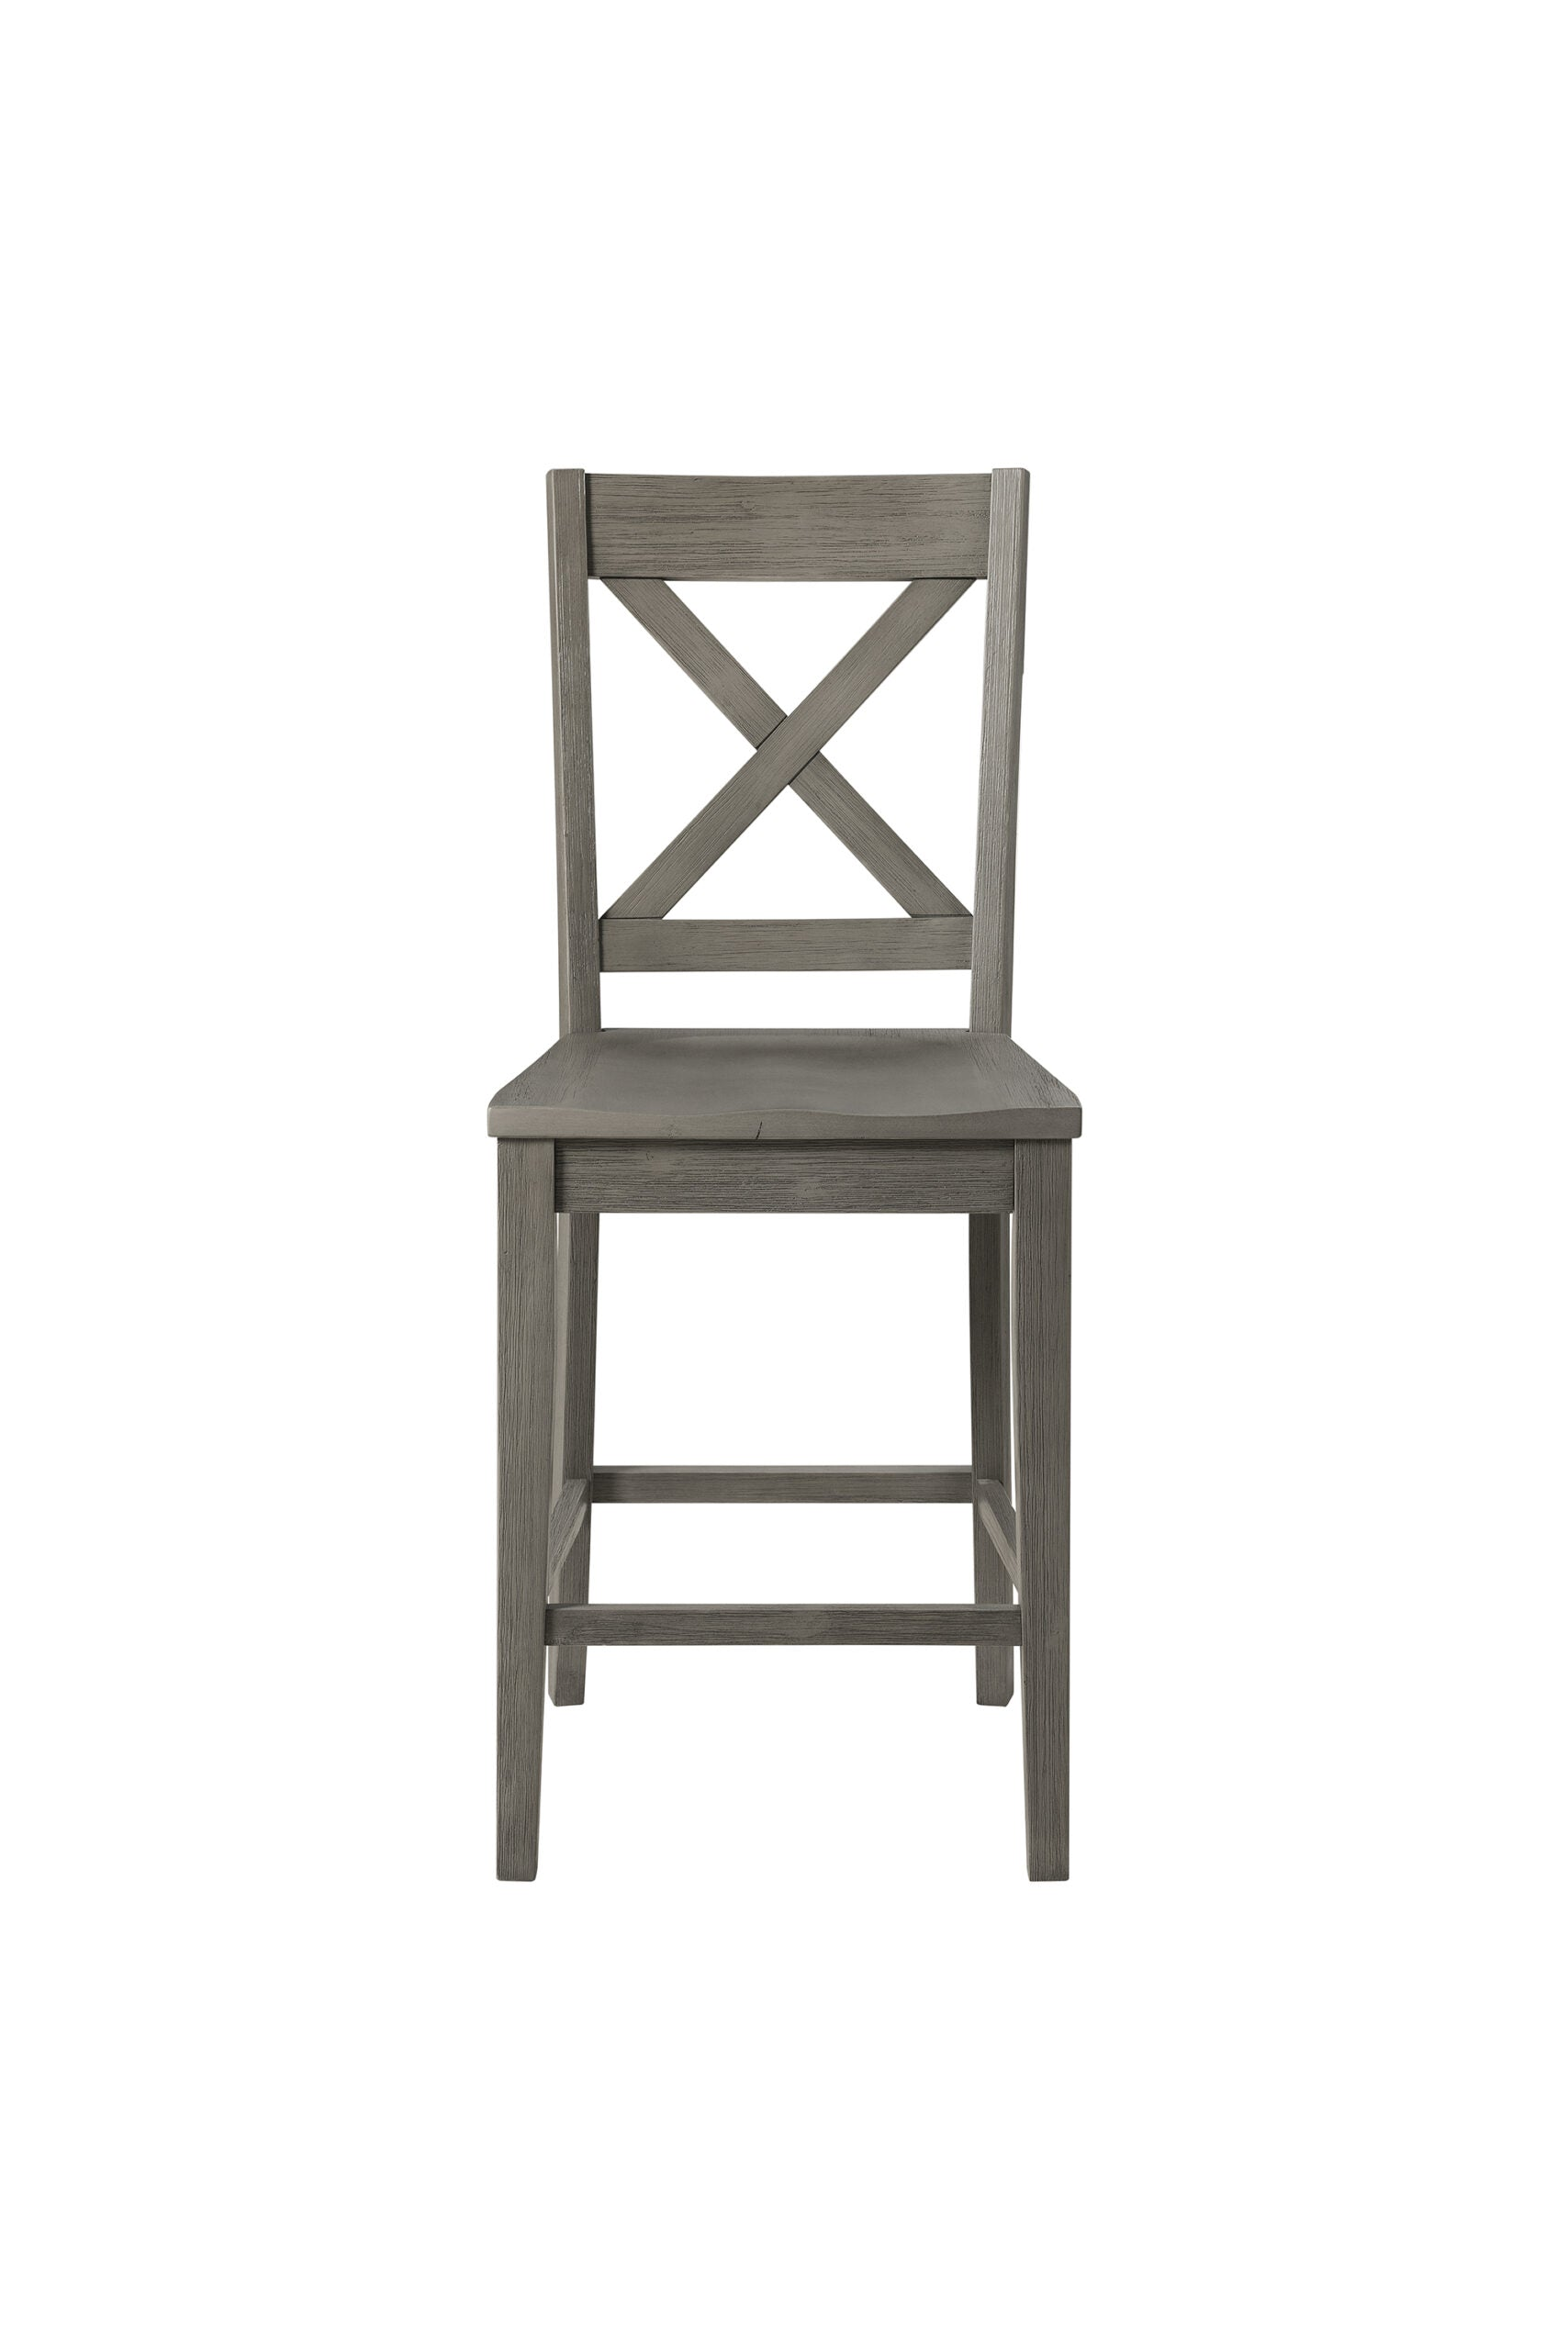 HURDG347K X BACK STOOL SILO